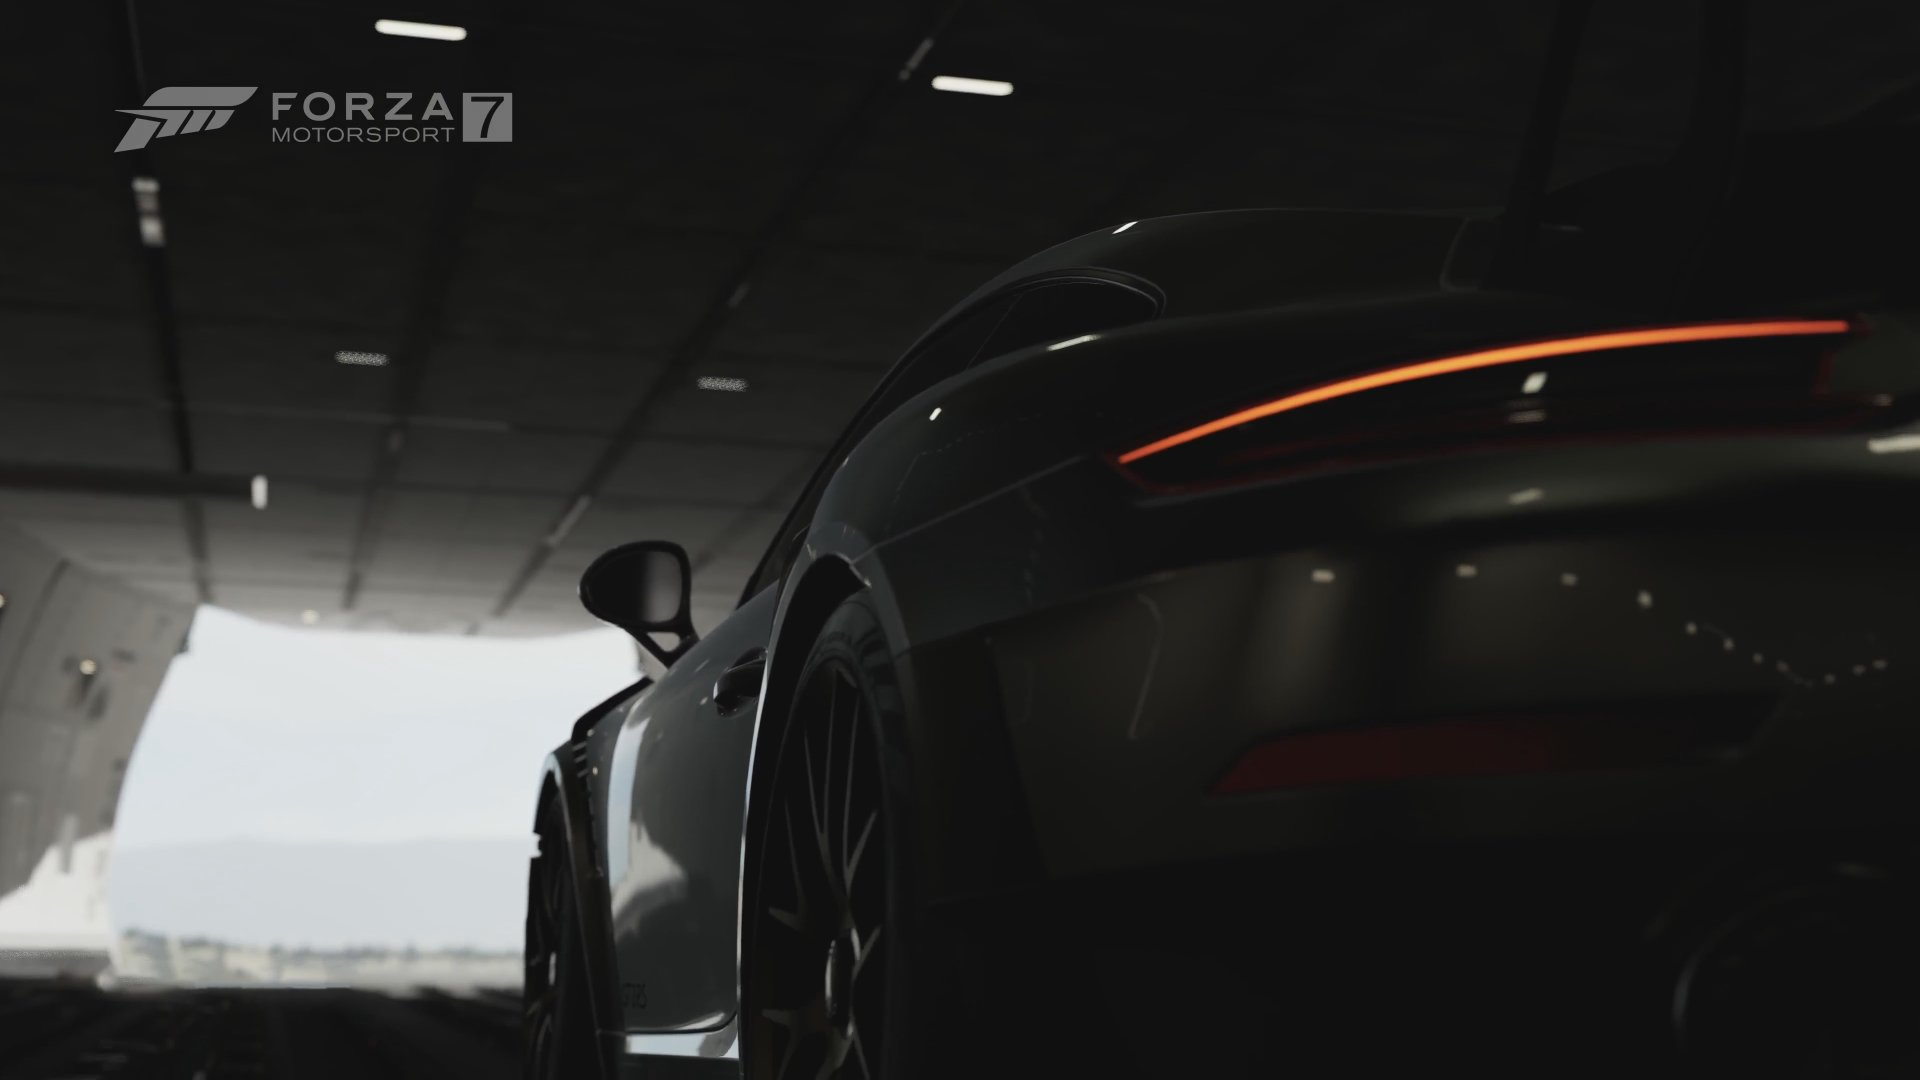 download forza motorsport 7 hd wallpapers read games reviews play online games download. Black Bedroom Furniture Sets. Home Design Ideas